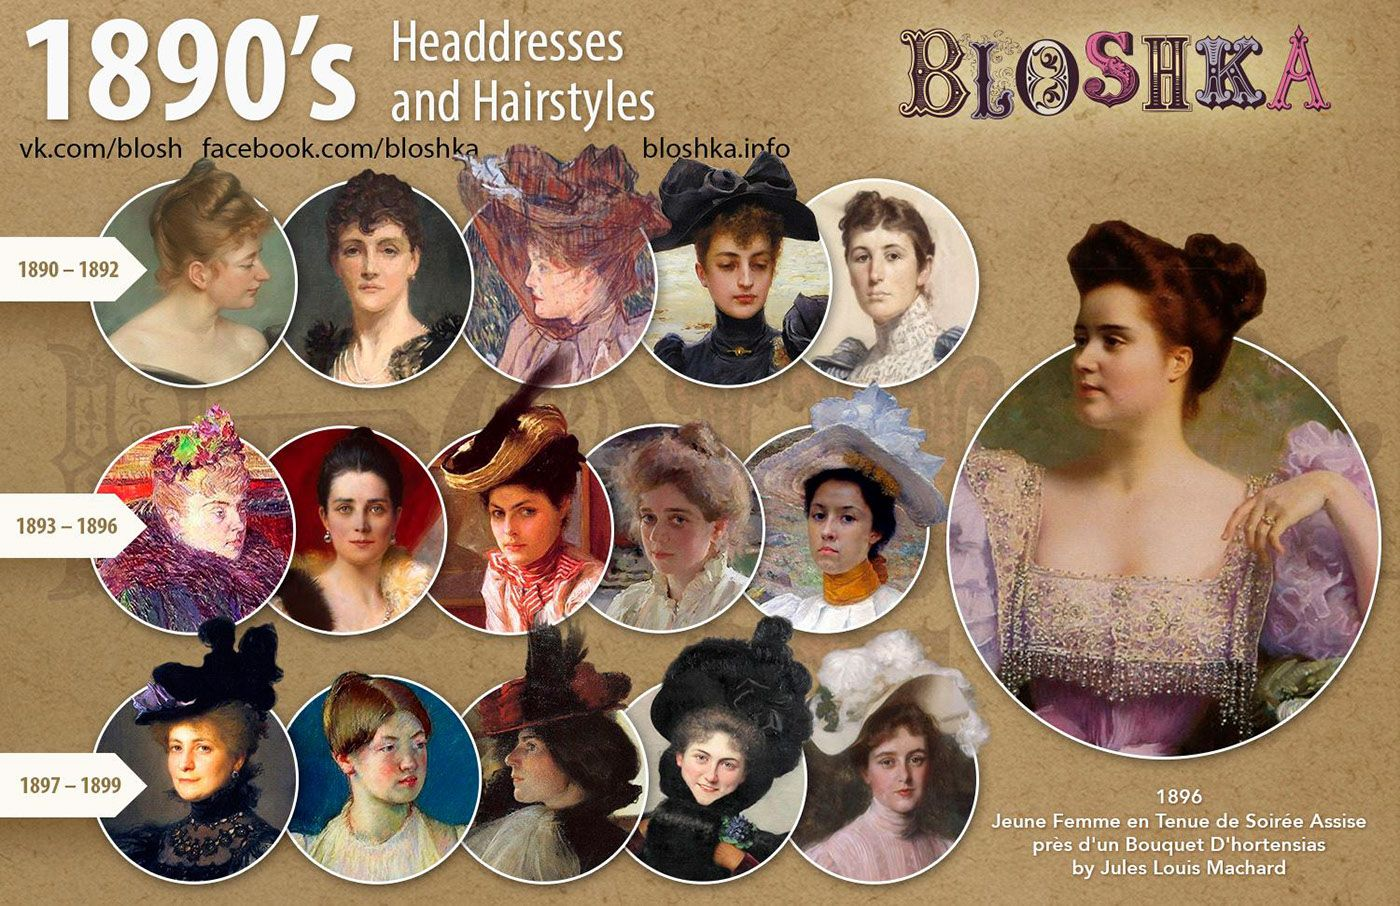 women's headdresses and hairstyles